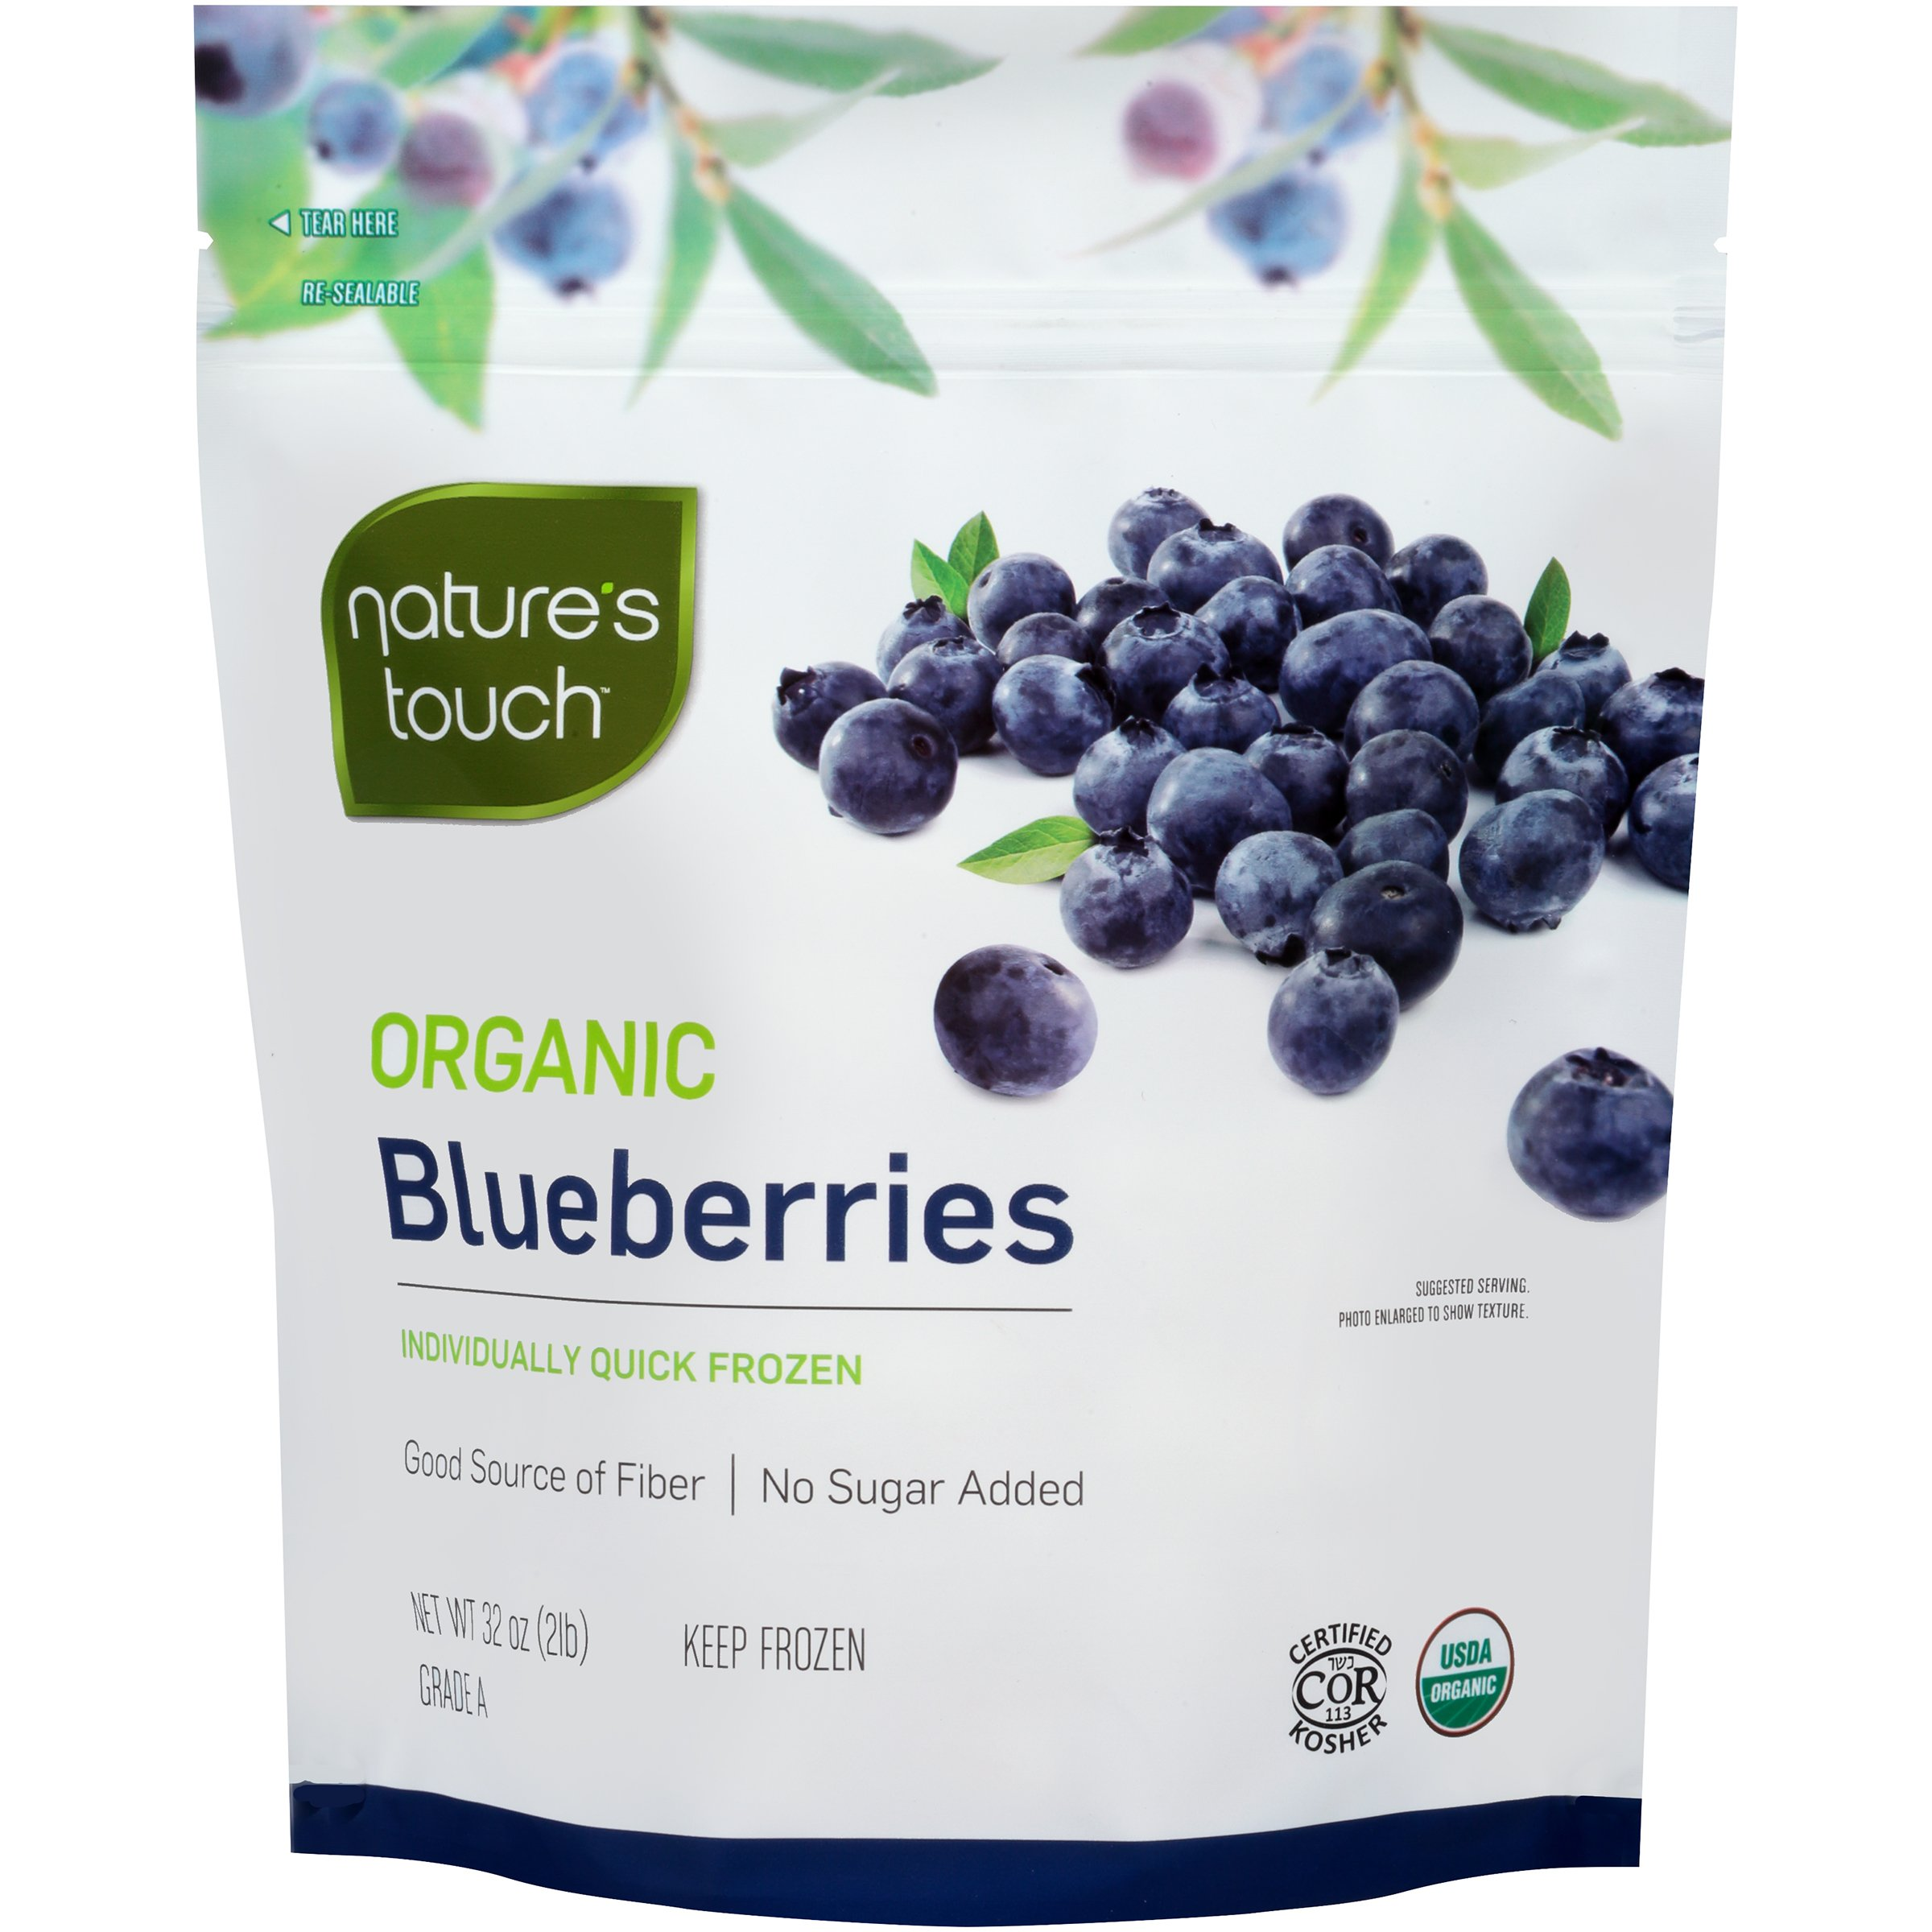 Nature's Touch Organic Fruits, Blueberries 32 oz. (6 Count) by Nature's Touch (Image #1)